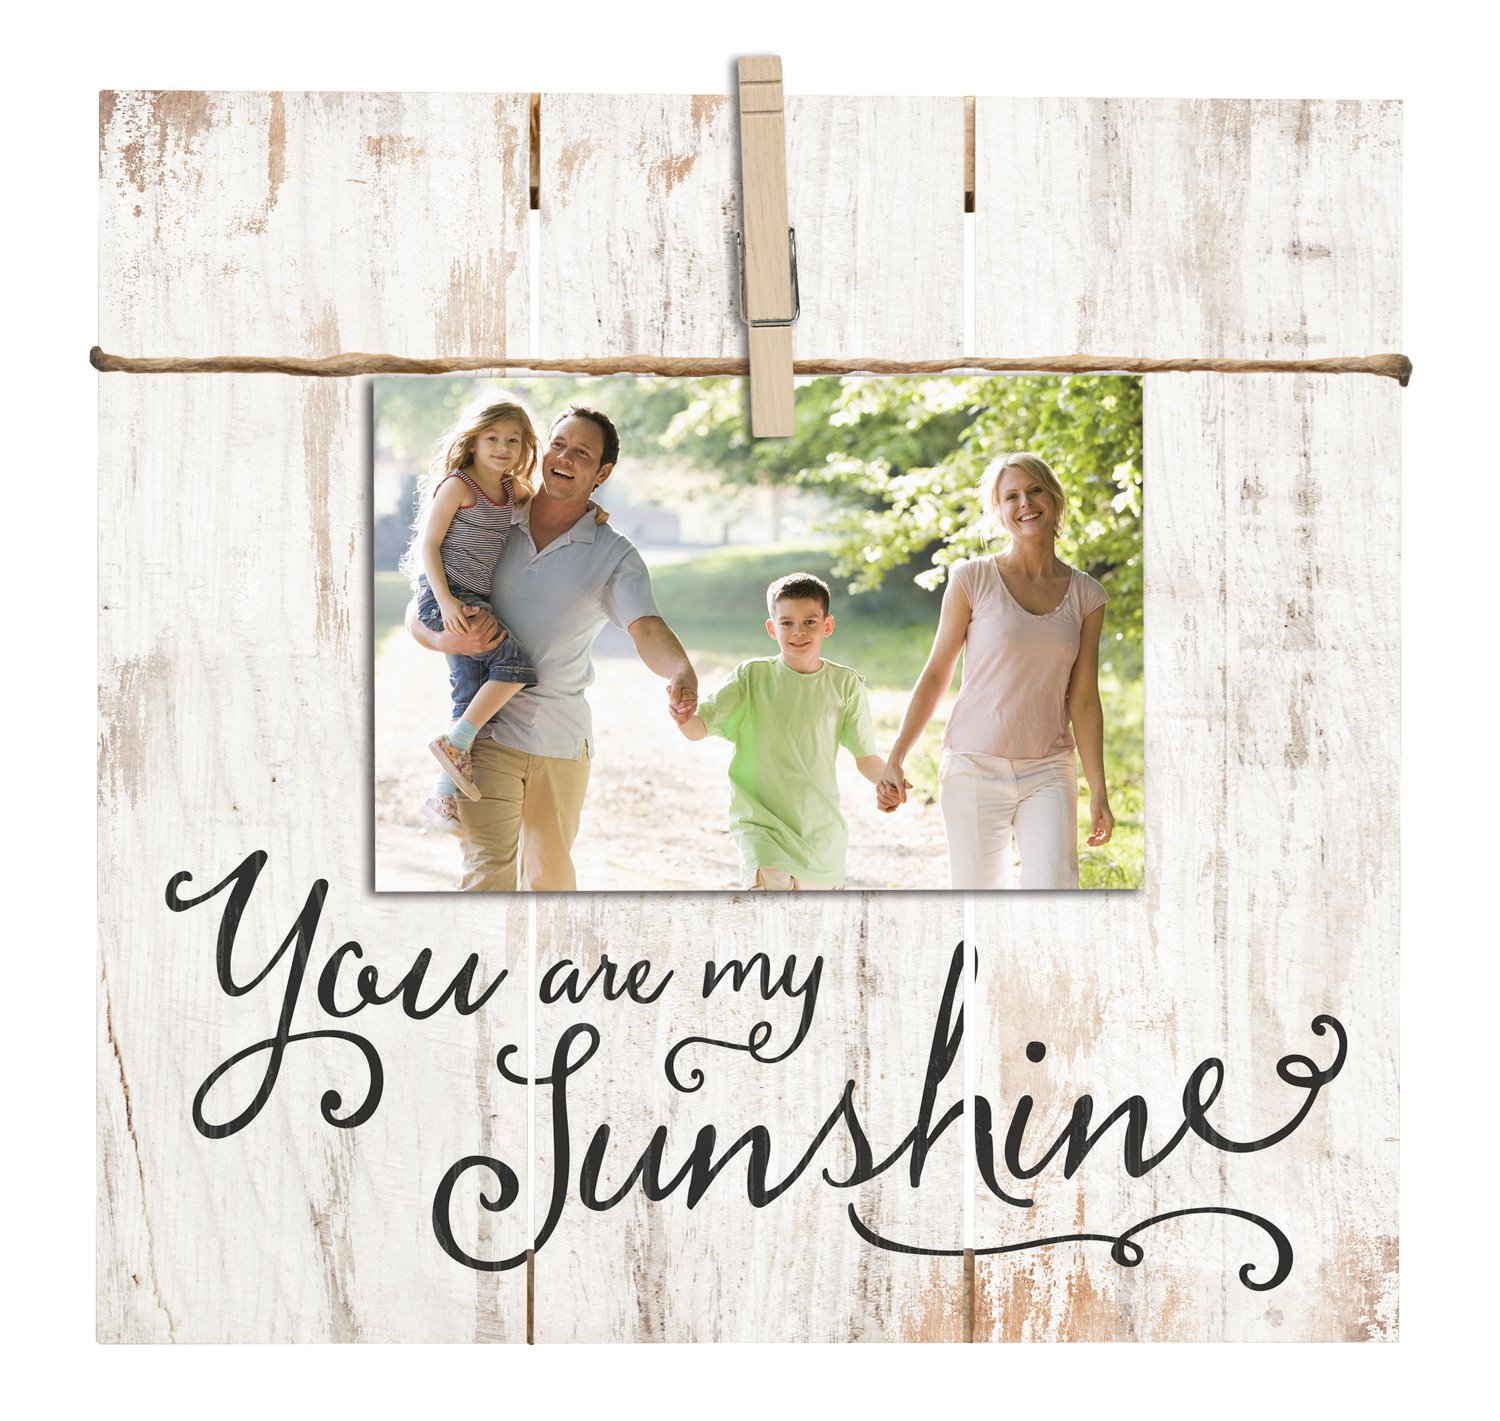 You Are My Sunshine 11 x 10 Inch Solid Pine Wood Clothesline Clipboard Photo and Momento Display